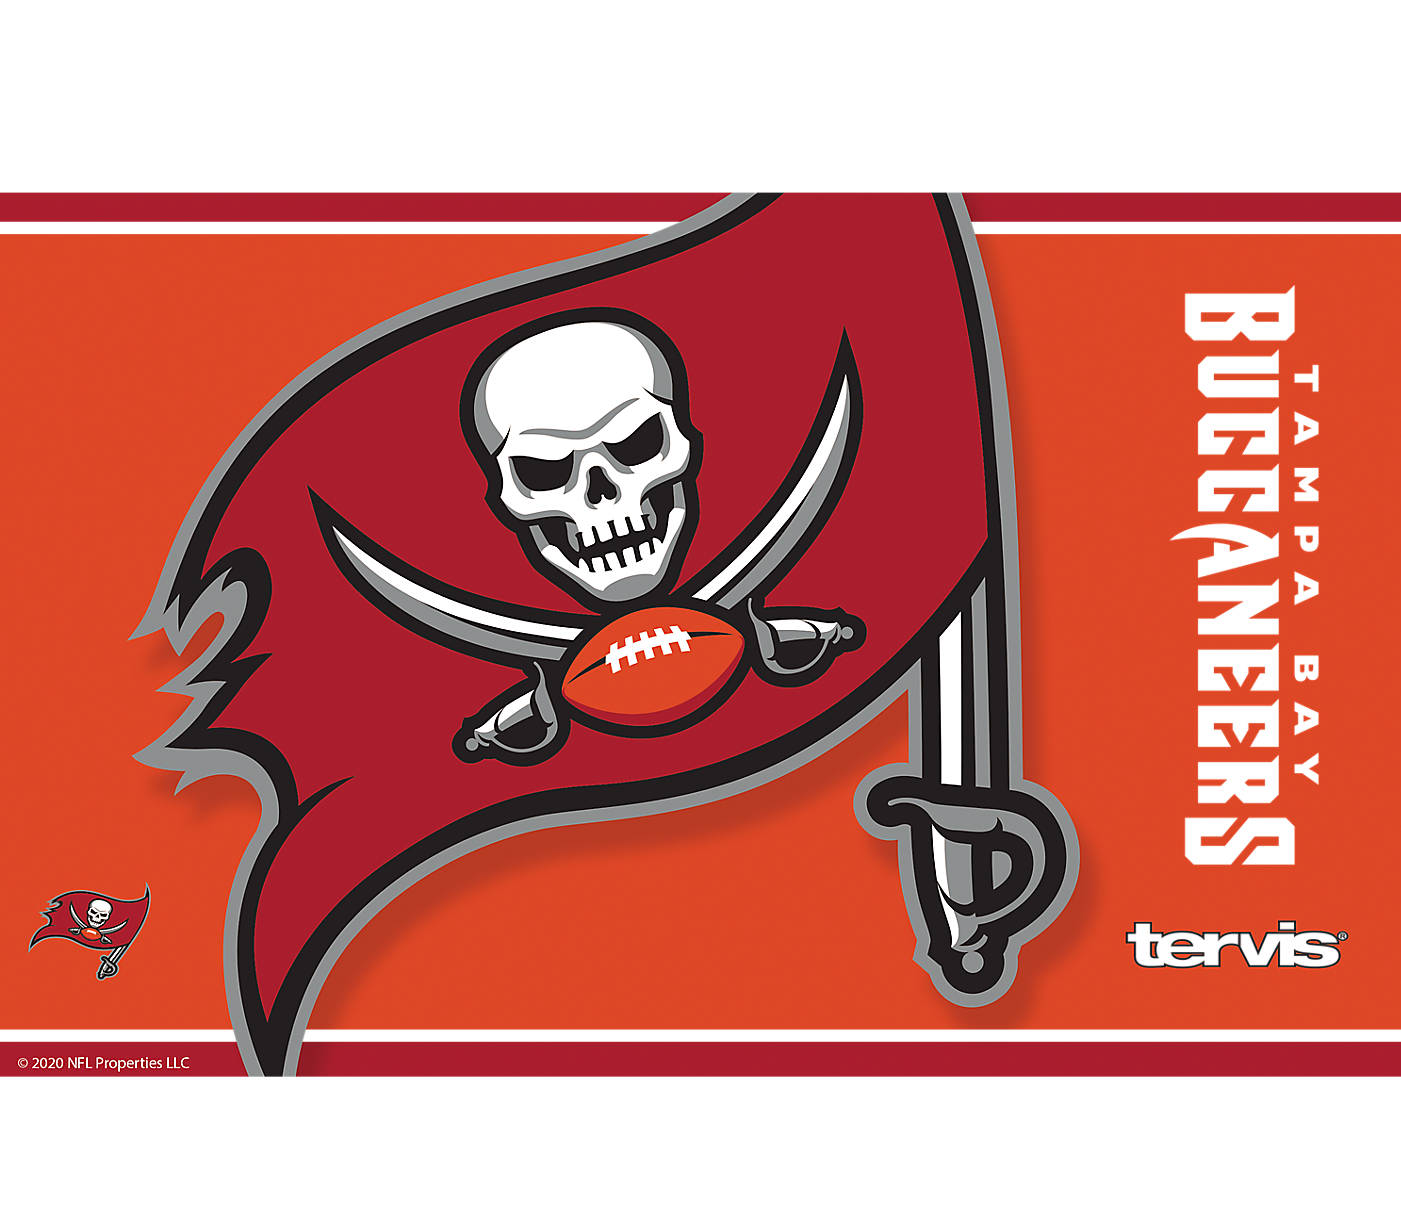 Nfl Tampa Bay Buccaneers Color Rush Tervis